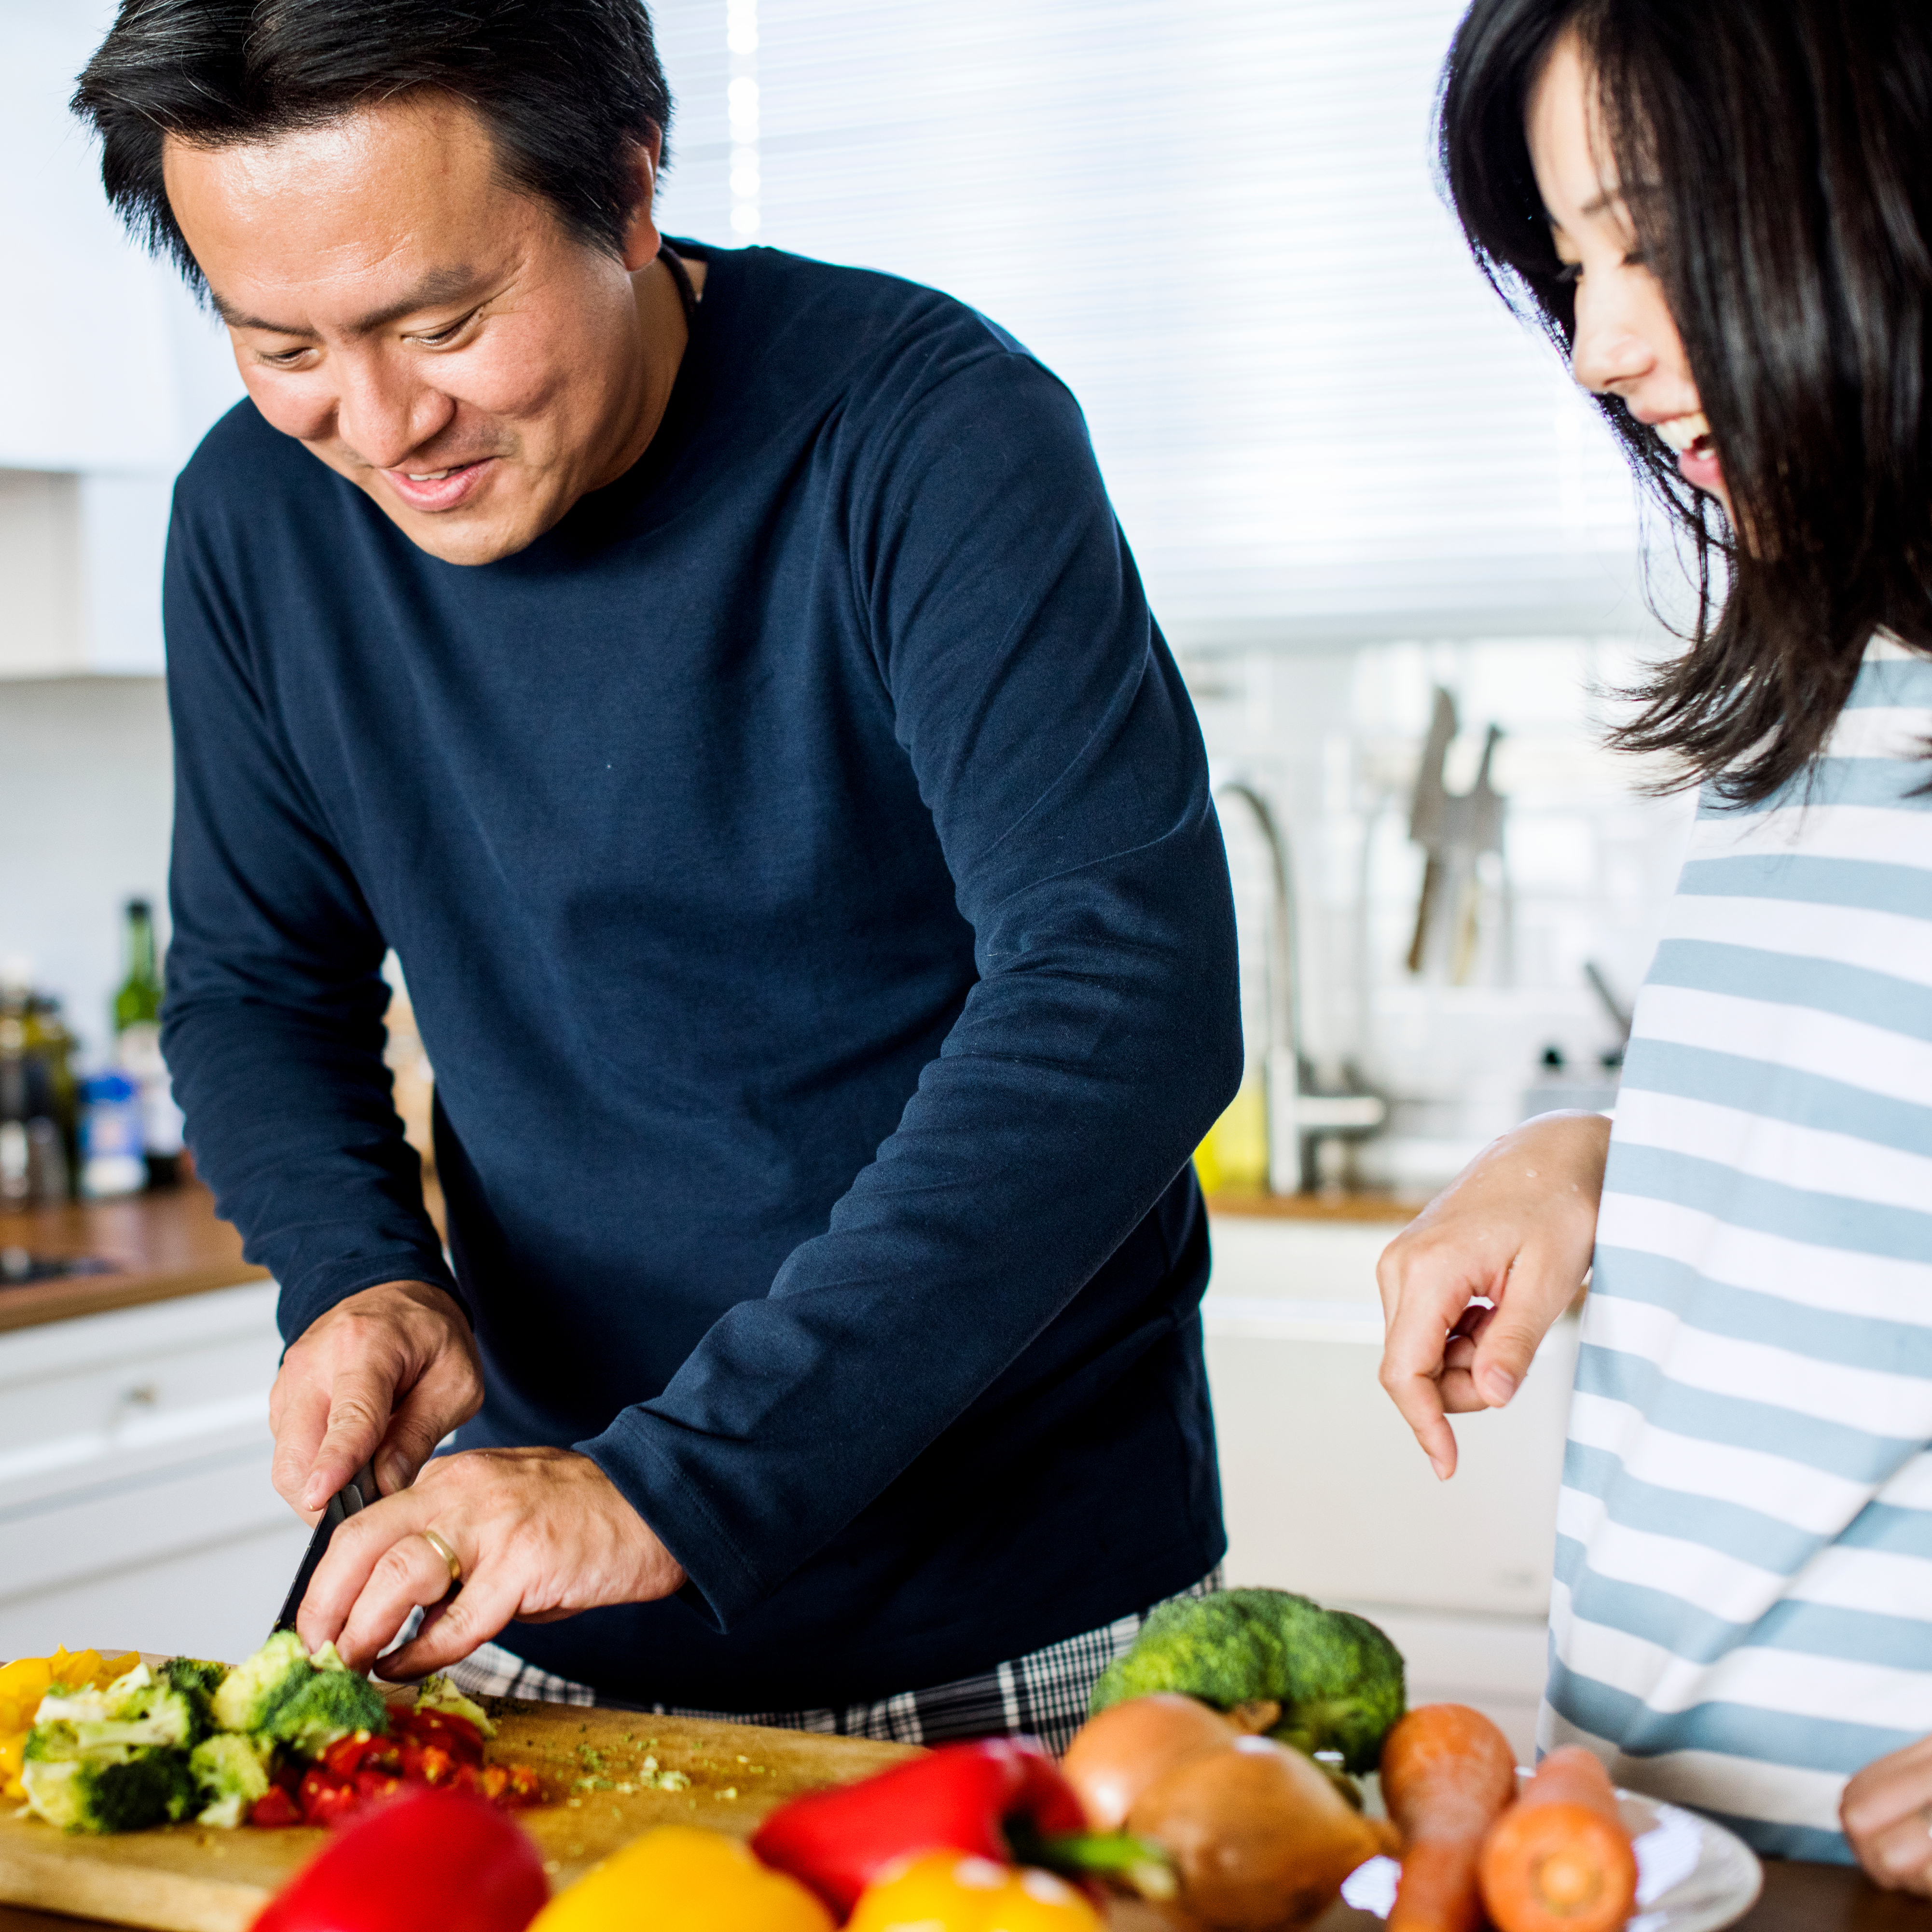 a smiling young couple in the kitchen, preparing food and cooking together